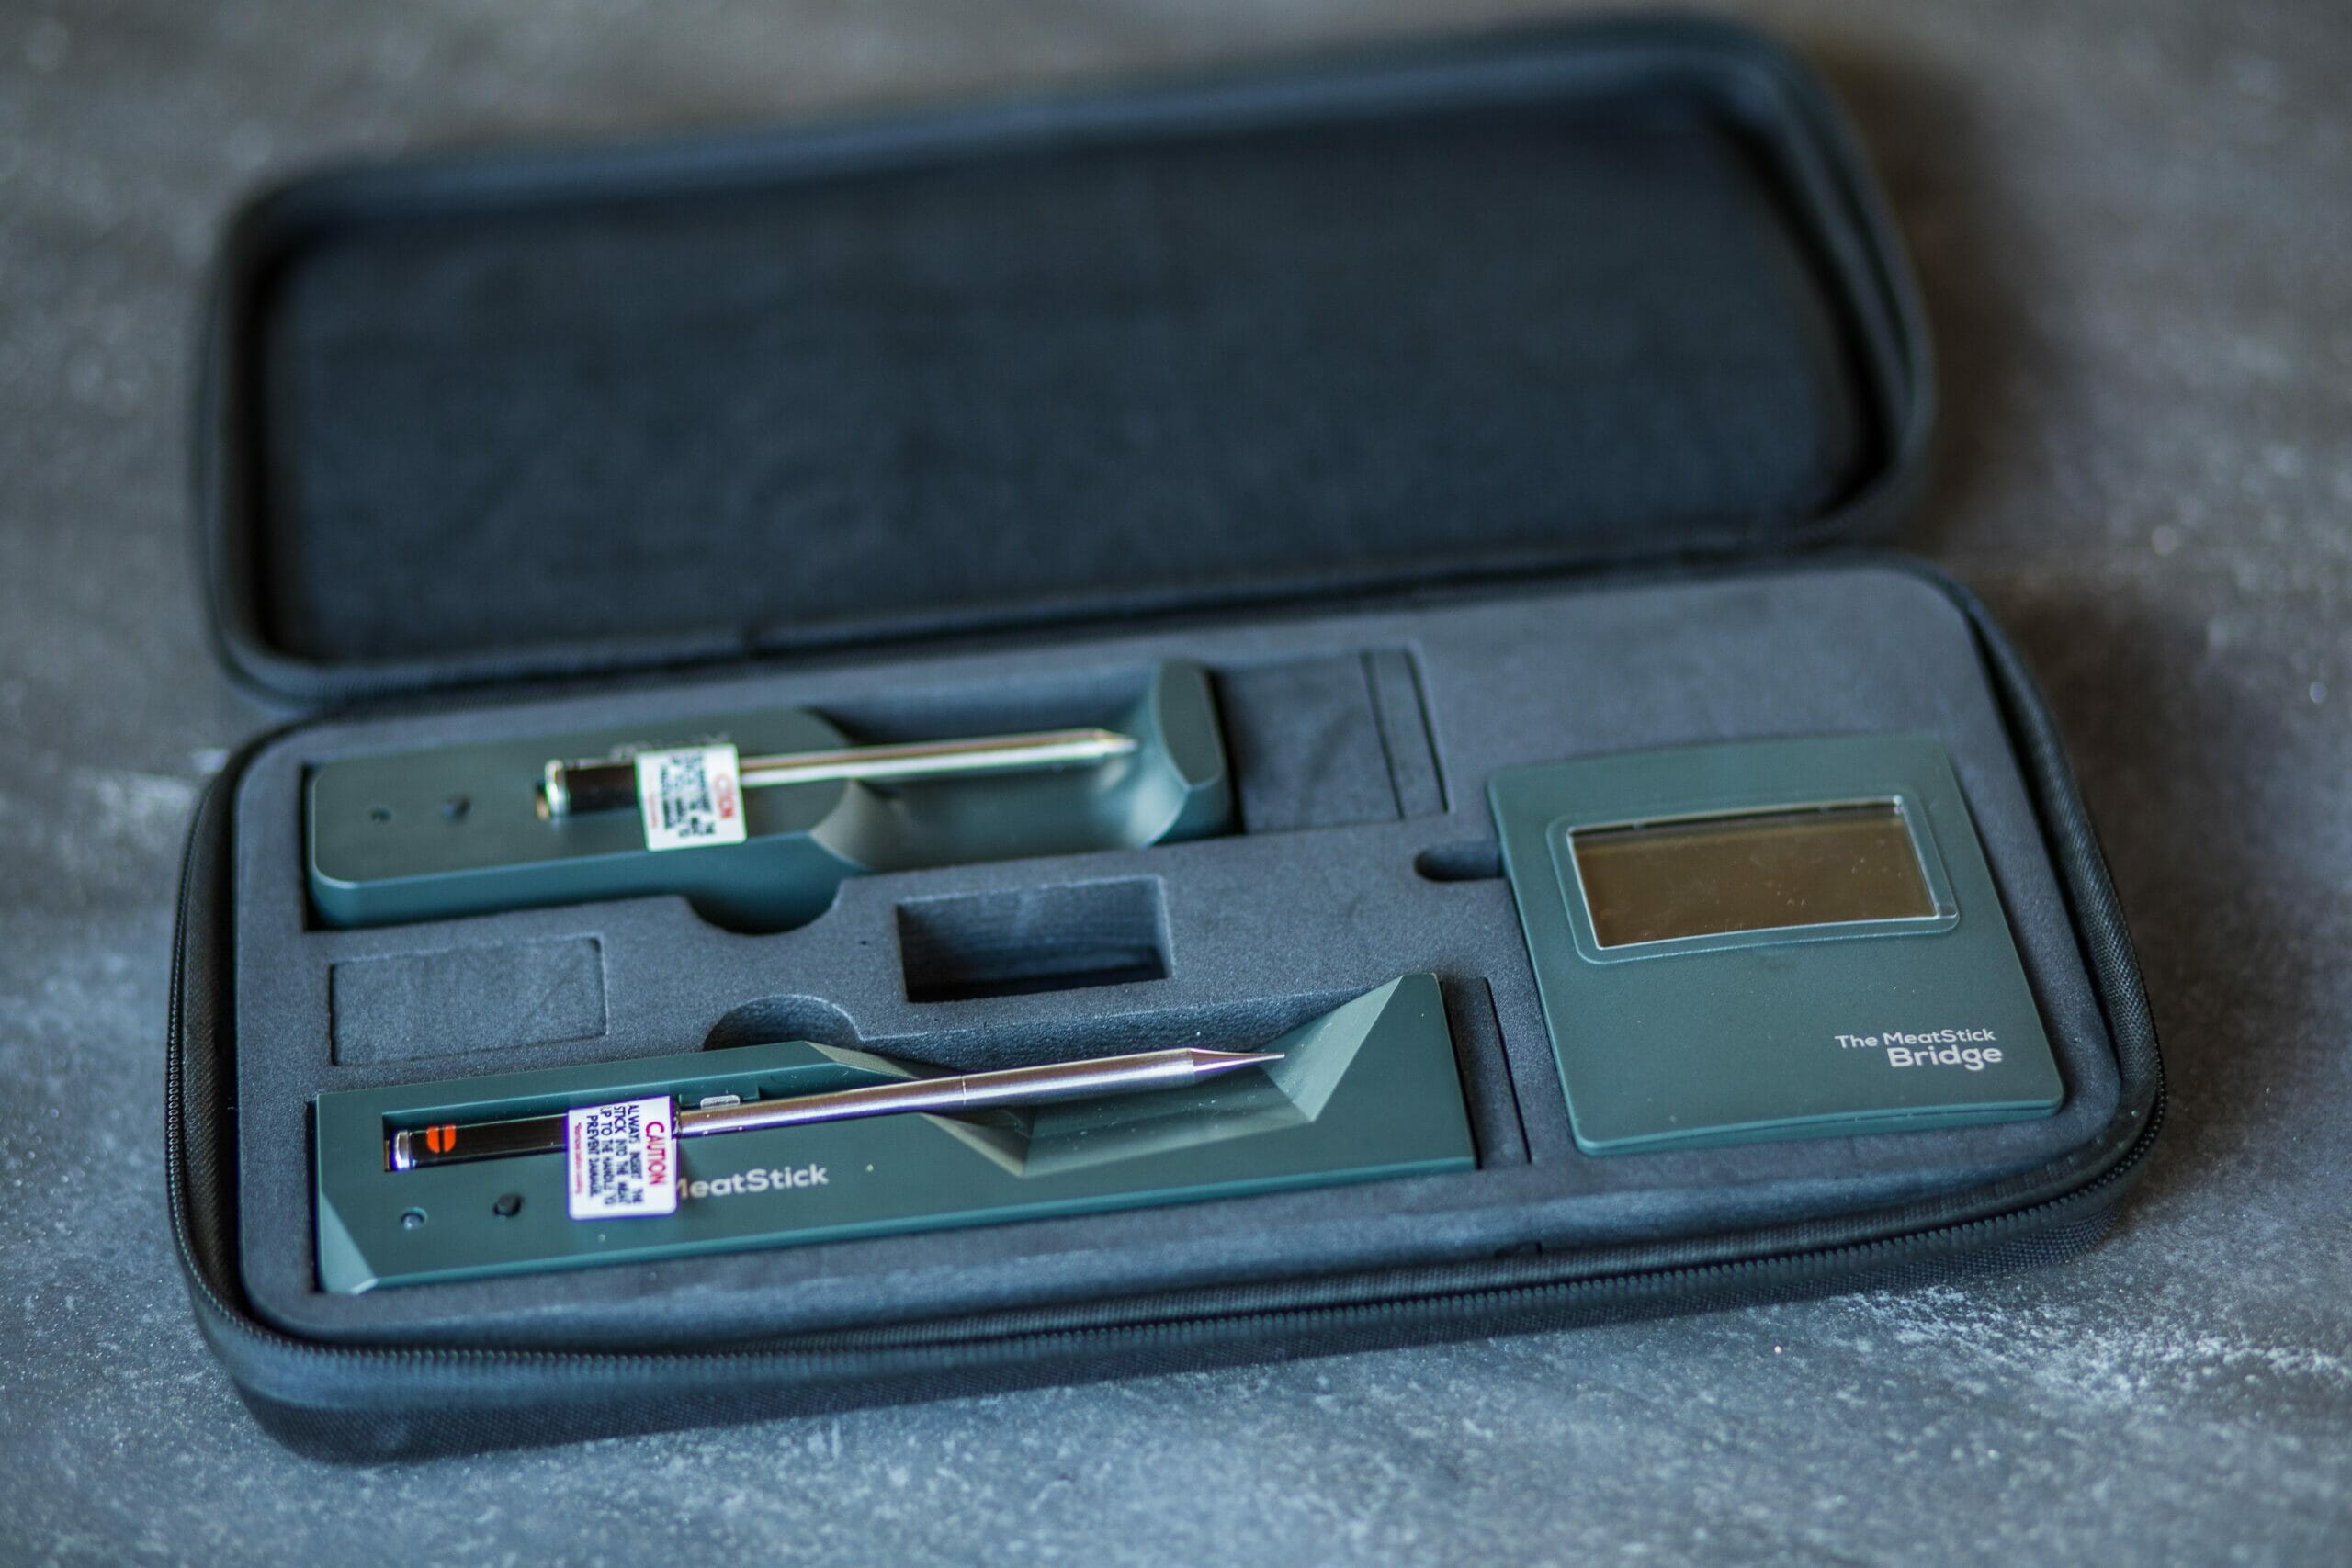 the MeatStick WiFi Pro combo set carrying case